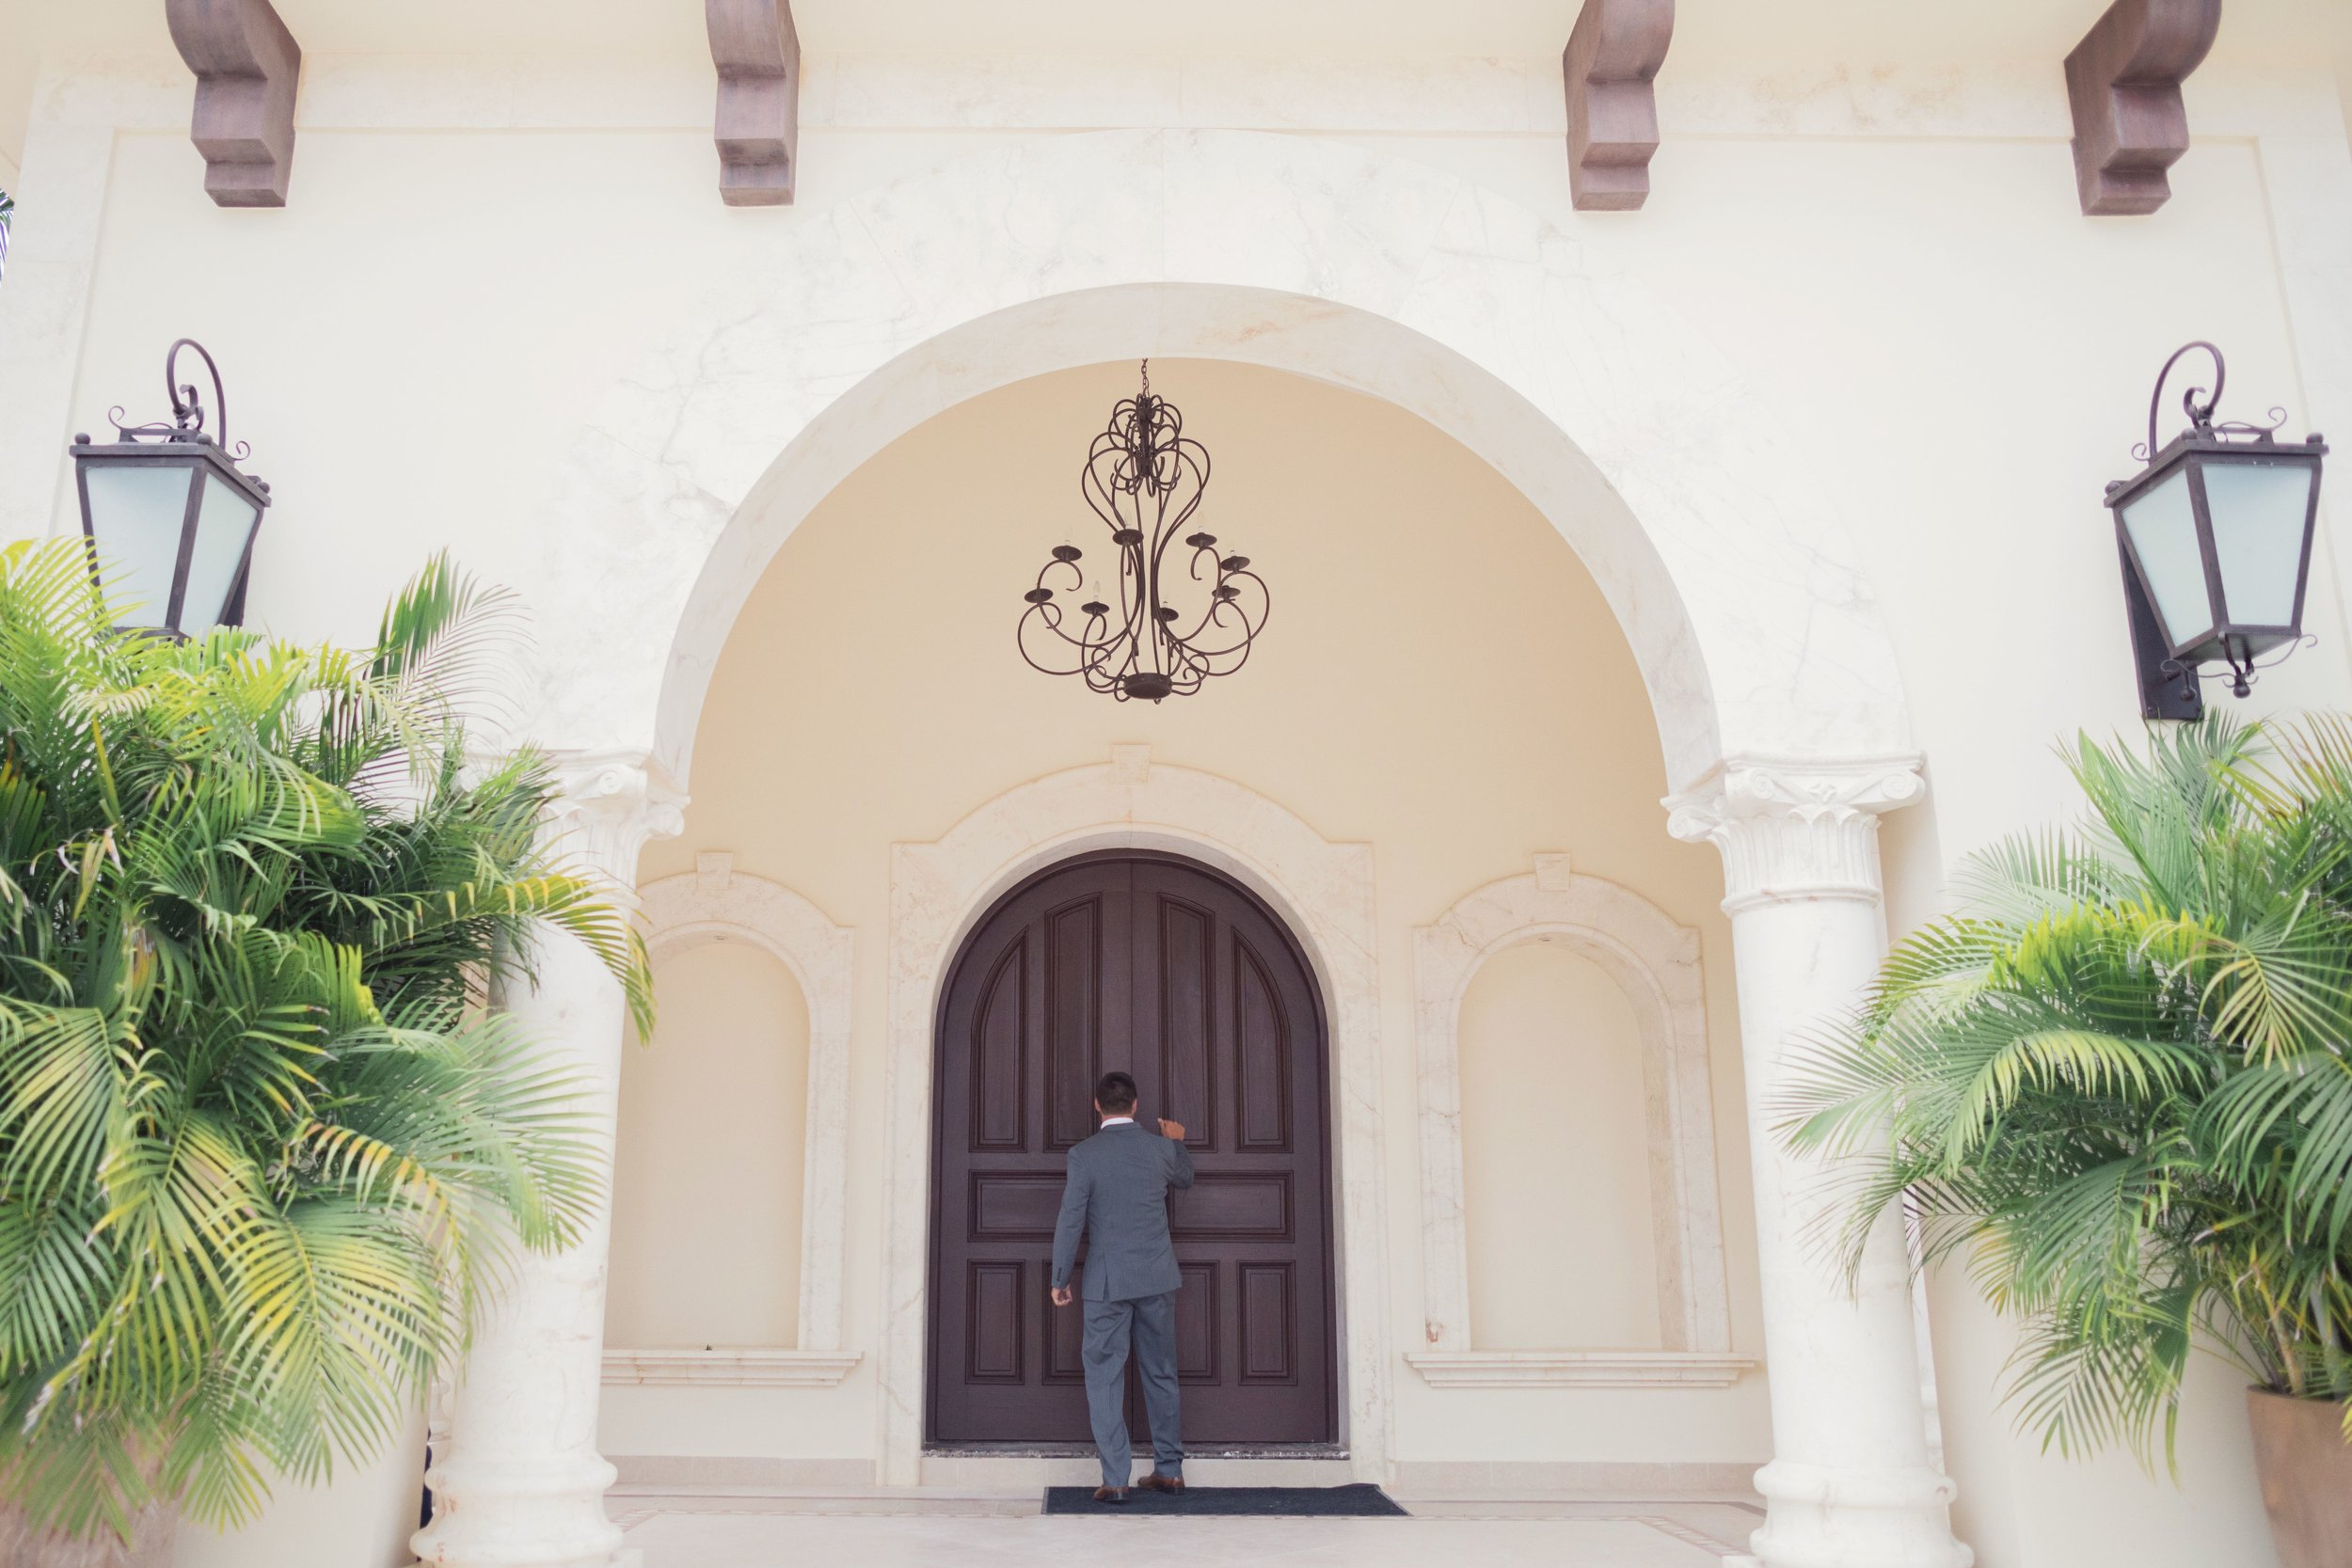 cancun-wedding-venue-villa-la-joya-40 copy-websize.jpg